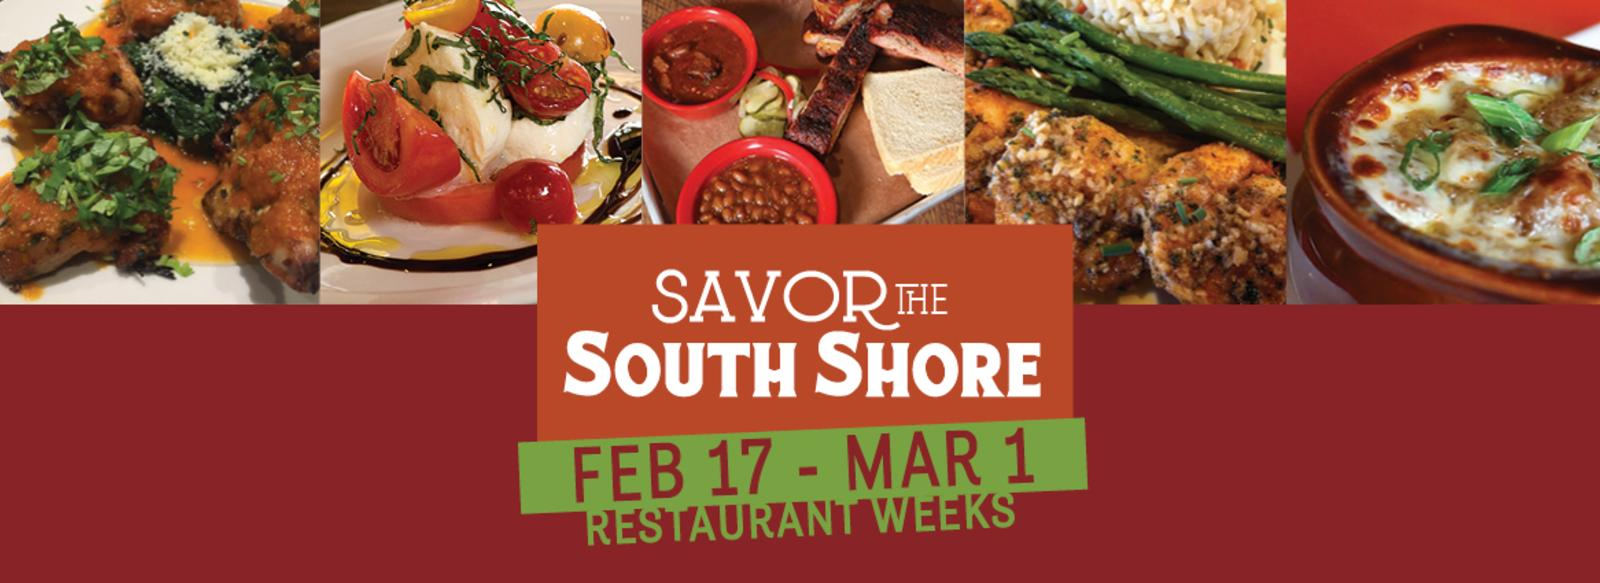 Savor the South Shore 2020